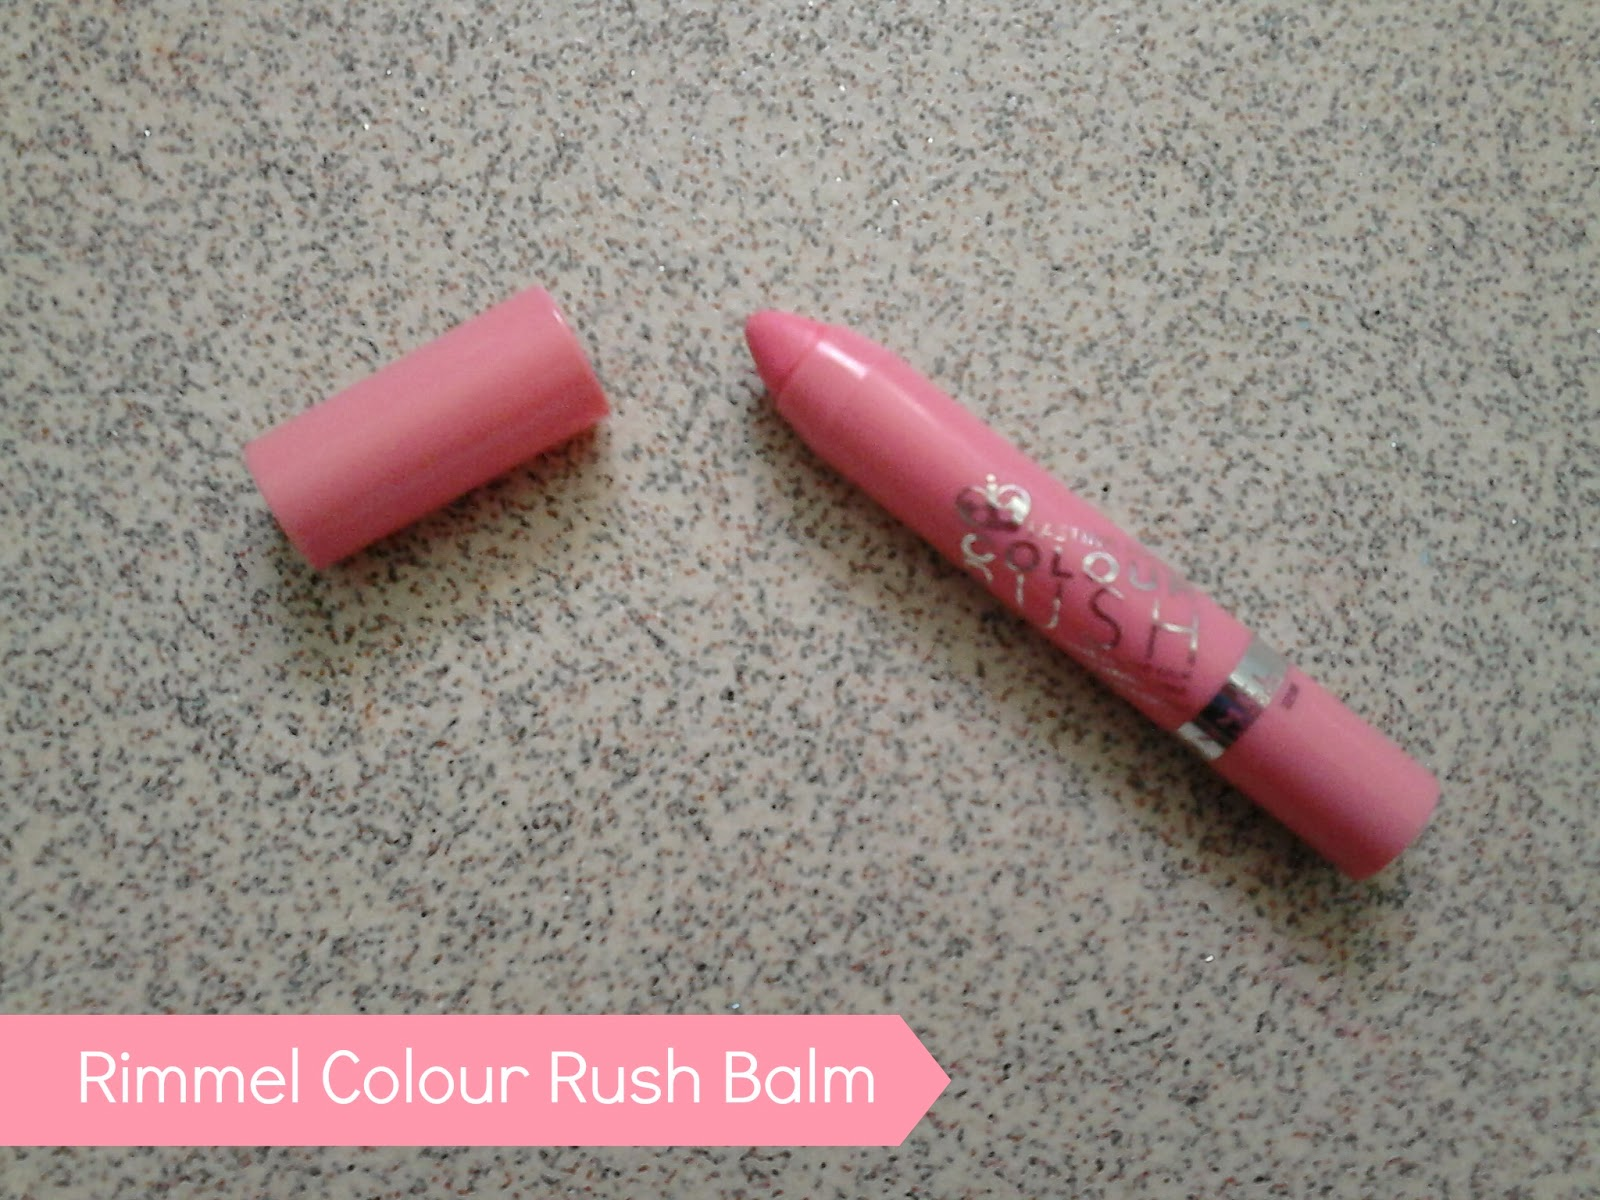 Rimmel Colour Rush Balm Give Me A Cuddle